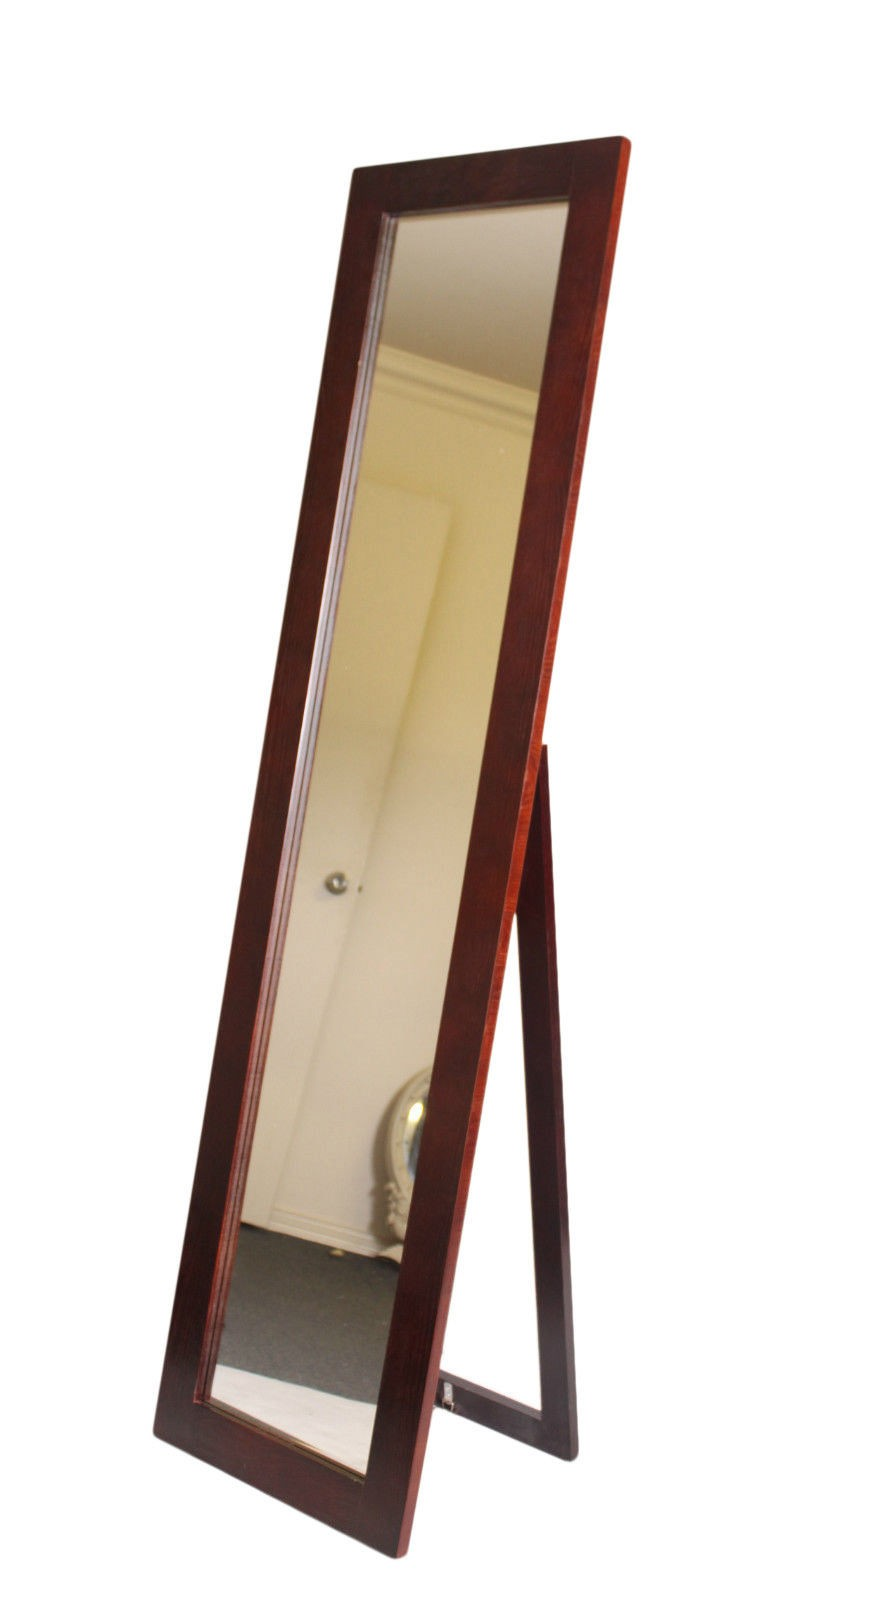 Cheval Rectangular Free Standing Full Length Floor Mirror